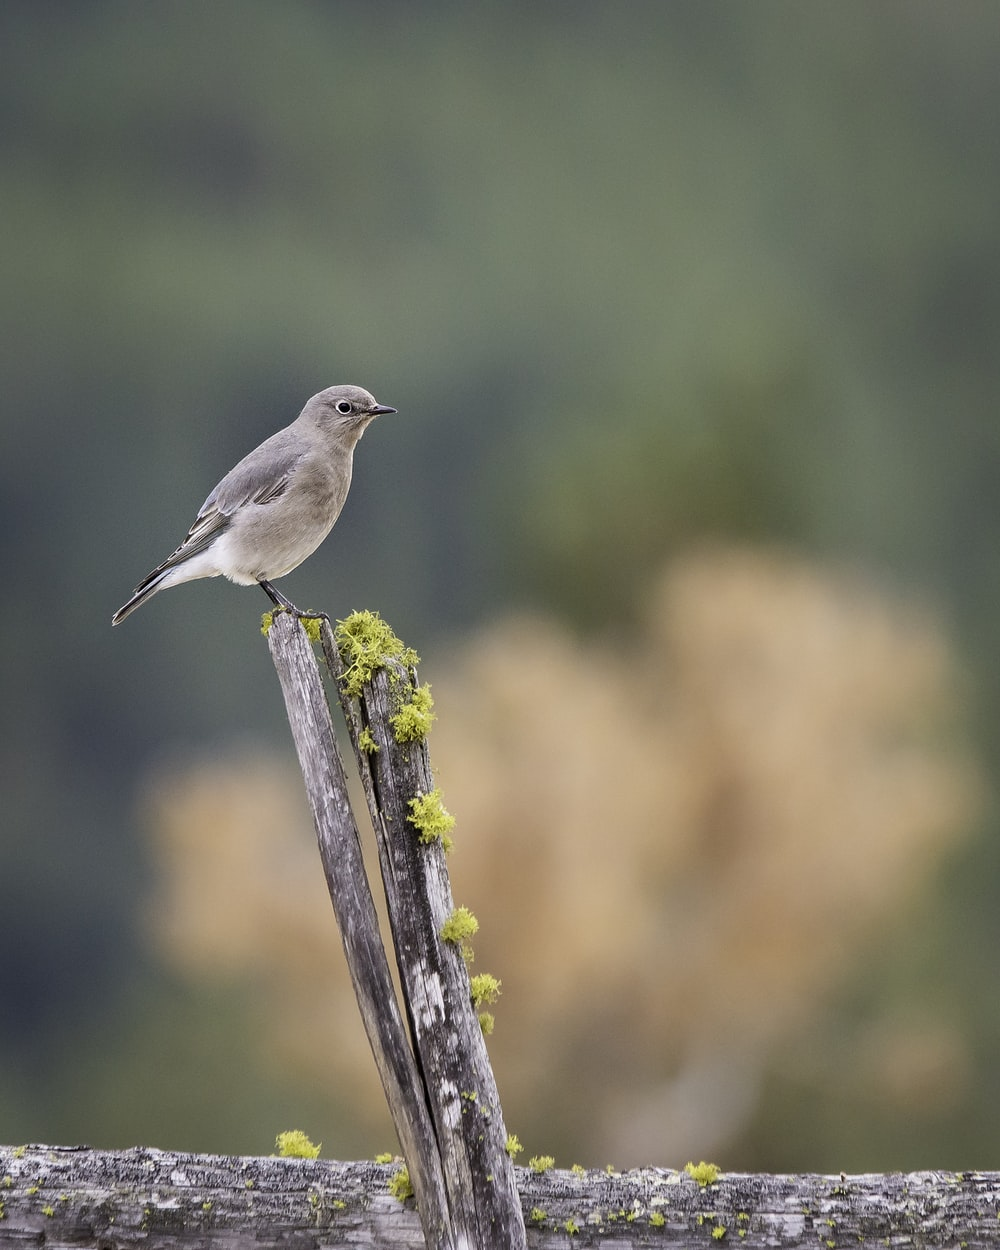 gray bird perched on brown wooden fence during daytime